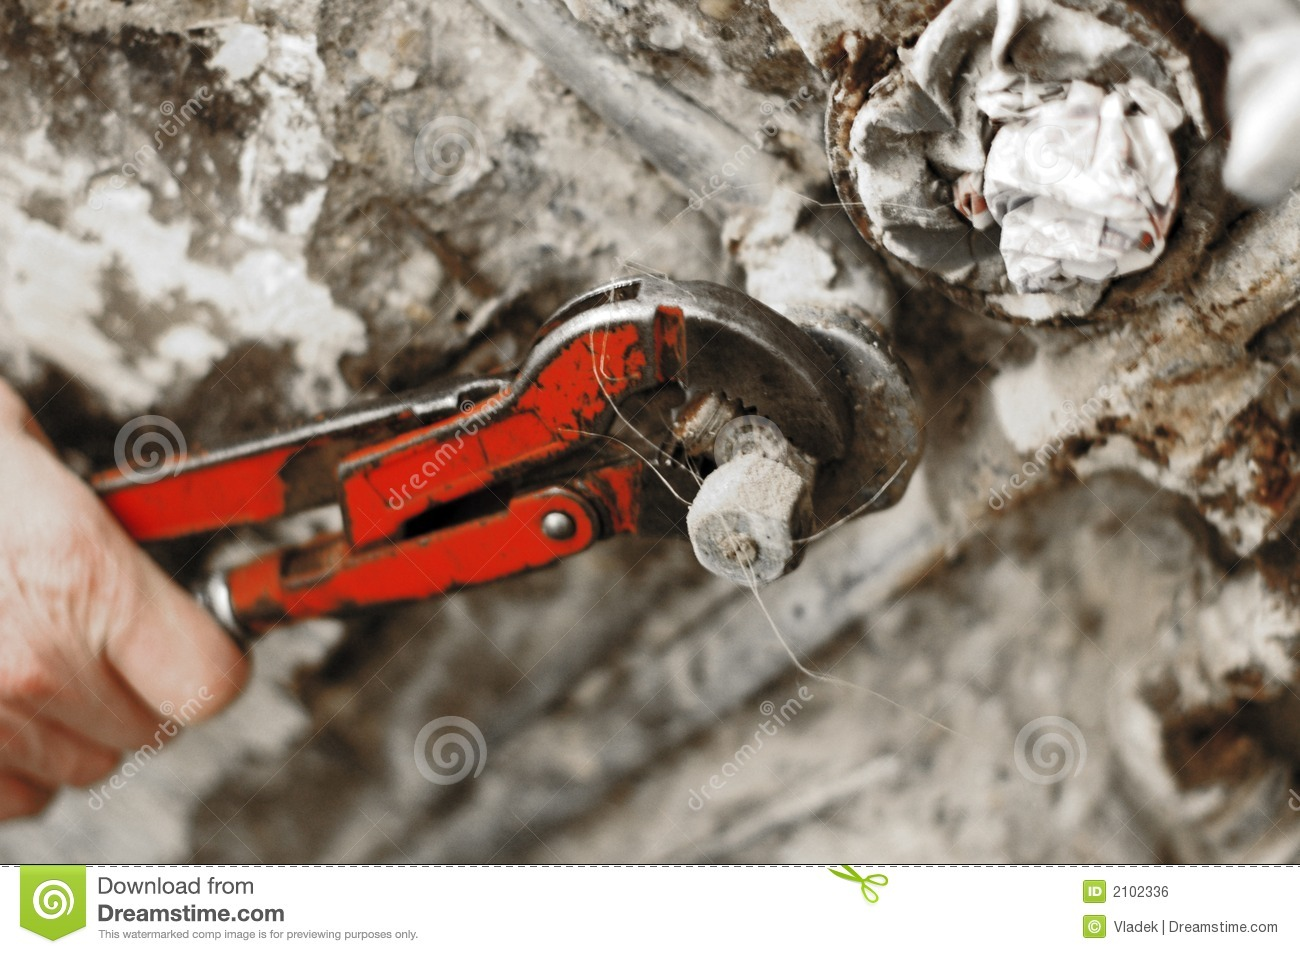 Plumber Wrench In Use Royalty Free Stock Image